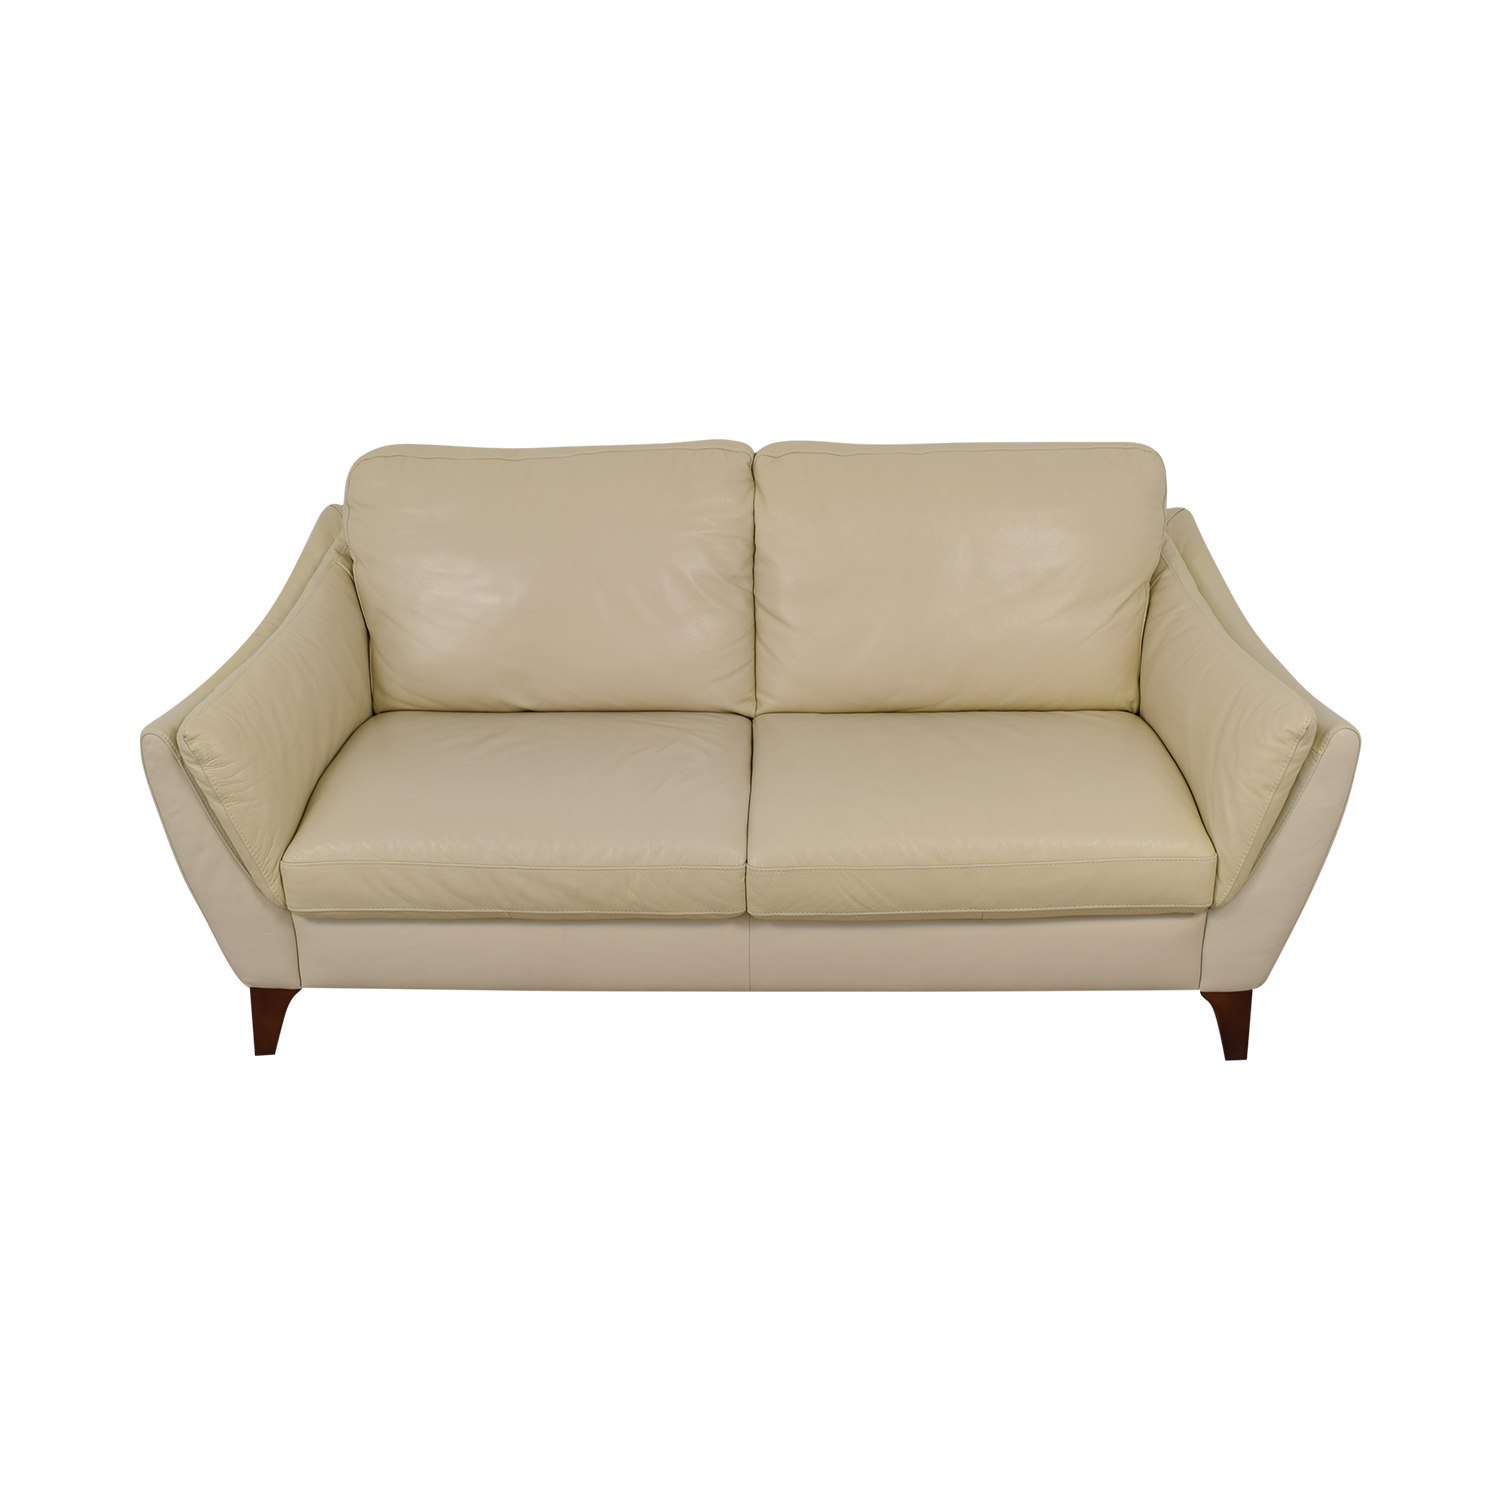 Natuzzi Natuzzi Greccio Beige Leather Two-Cushion Sofa dimensions